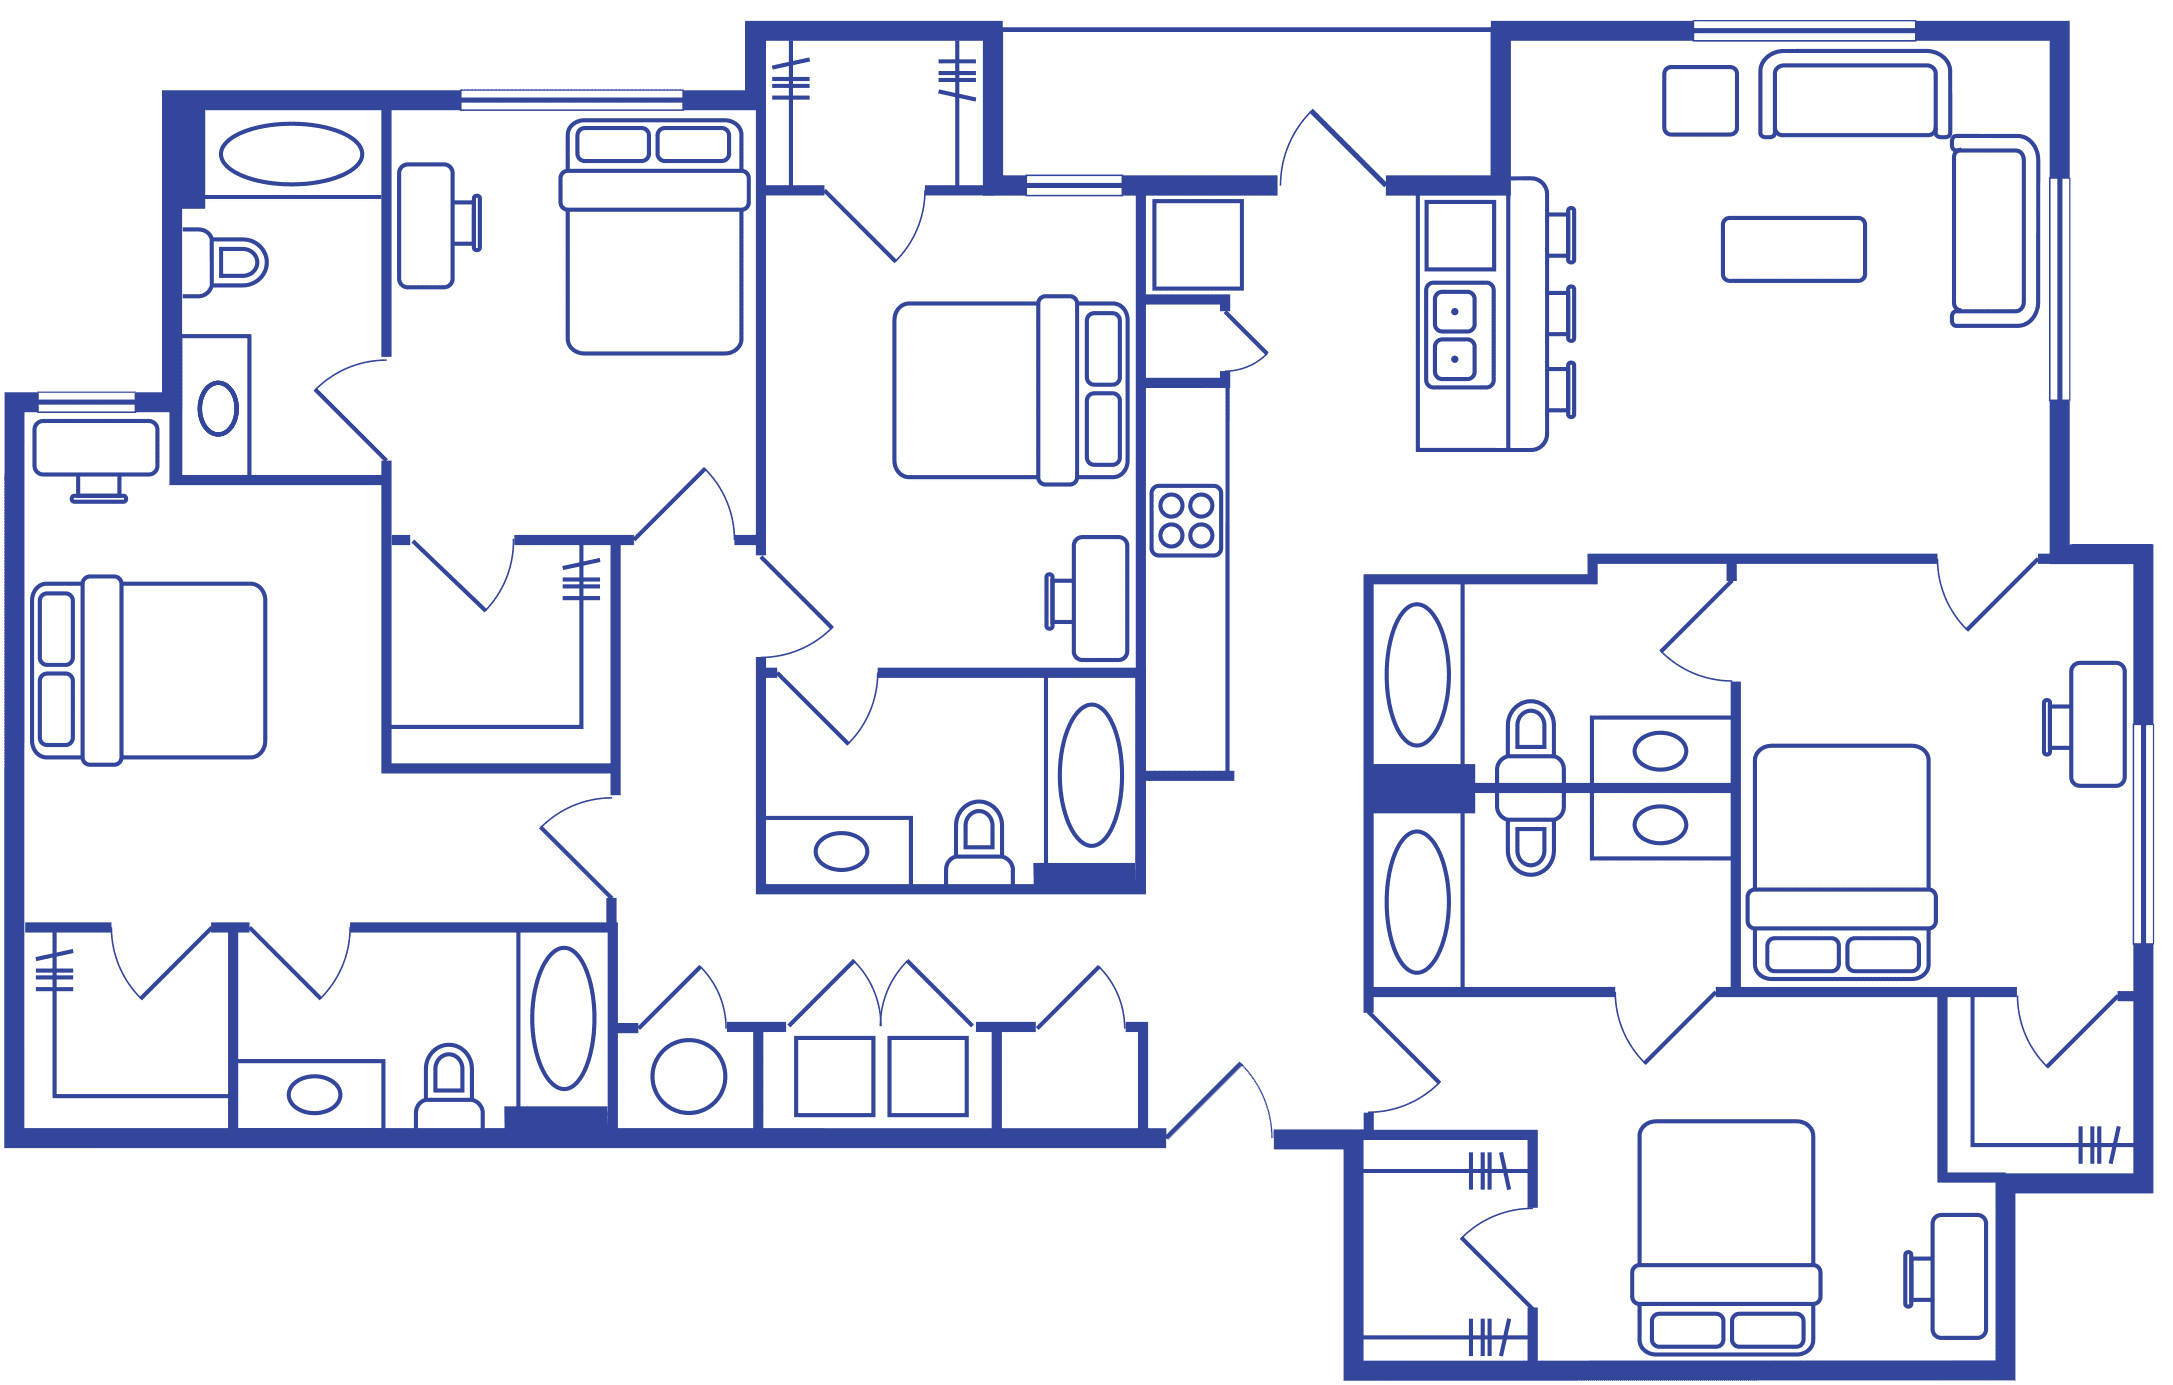 5 Bedroom 5 Bath Image